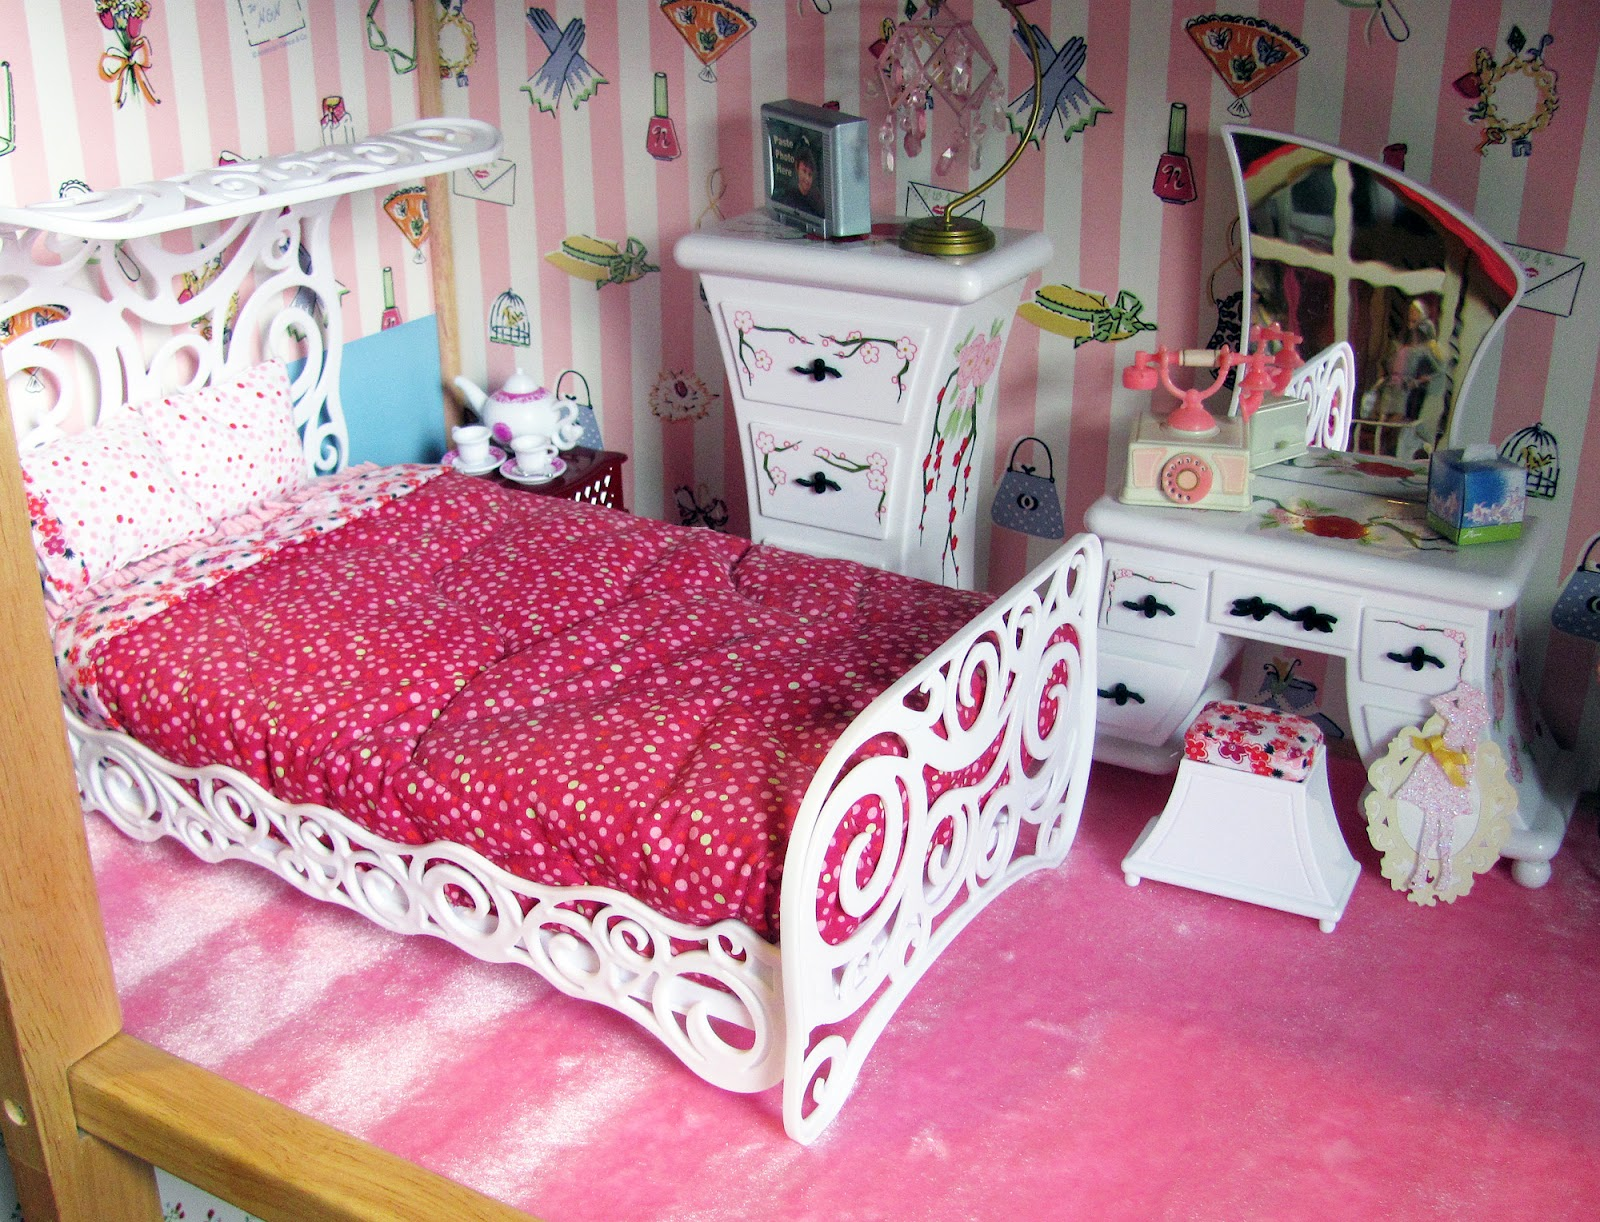 pink and black bedroom wallpaper pink and black wallpaper for bedrooms 11 cool wallpaper 19432